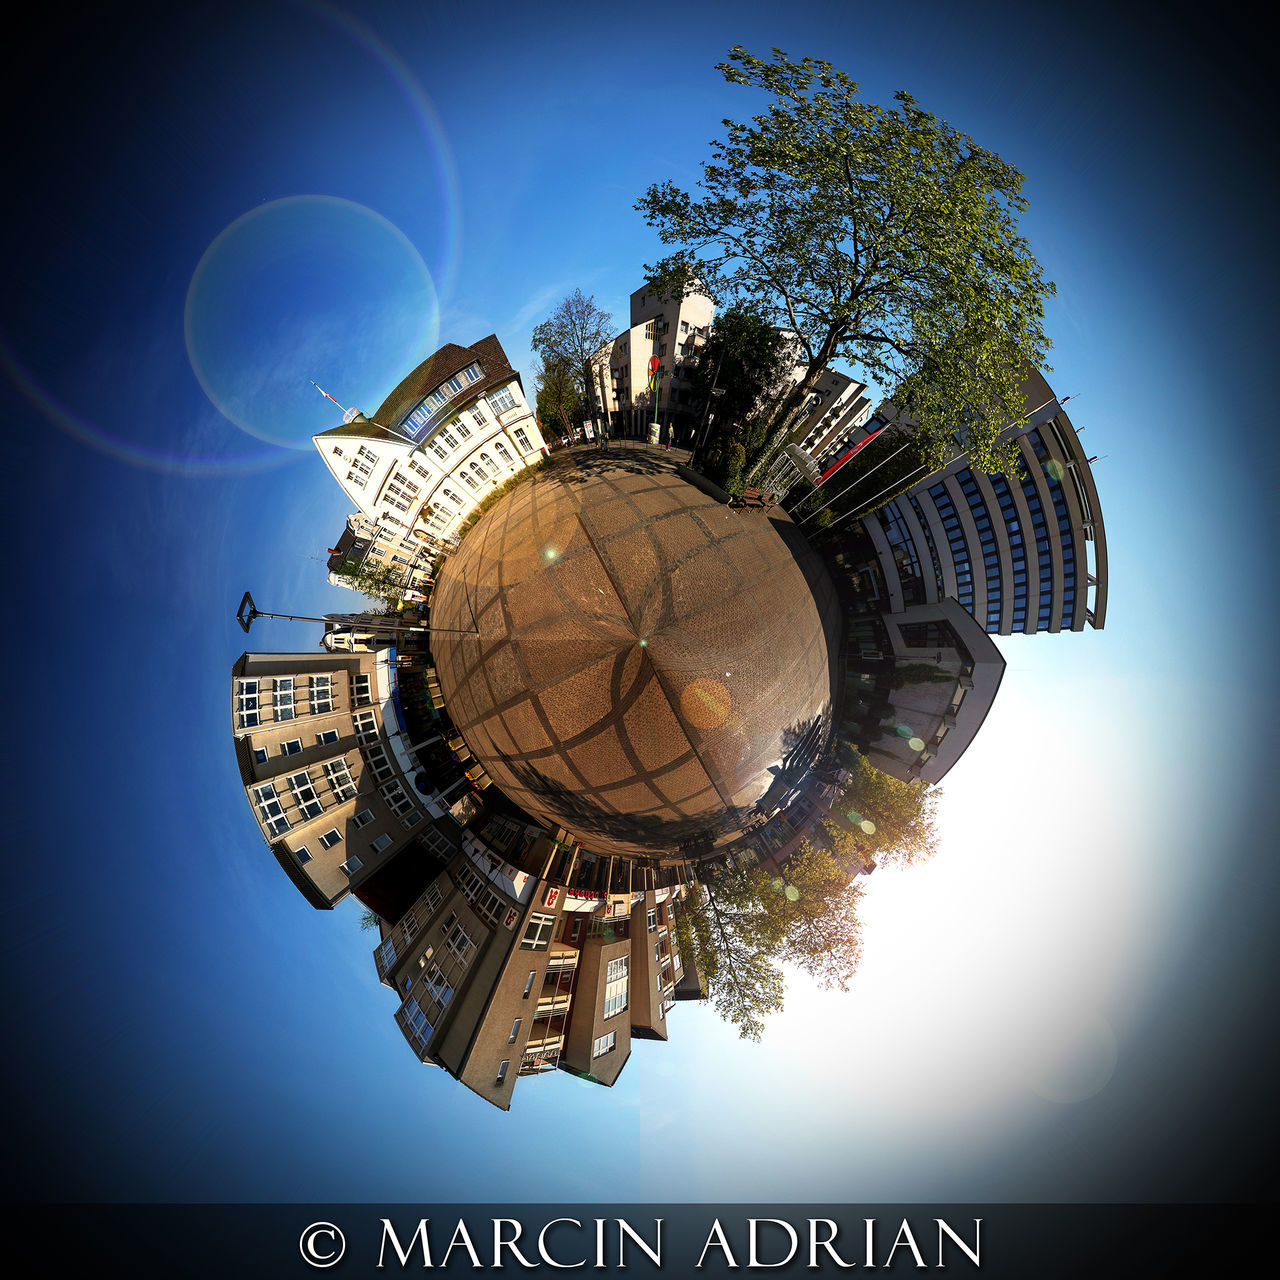 Marcin Adrian Www.marcinadrian.de Wesseling Architecture Eyeem Architecture Eyeem Architecture Lover EyeEm Germany Eyeem Panorama 360 Panorama 360º  Panoramic Photography EyeEm Best Shots - Architecture Eyeemworld EyeEmBestPics Germany Photos Eyeemphotography Panoramic 360° Panorama 360 EyeEm Germany Germany Photos Official EyeEm © Panorama 360camera 360panorama  360°